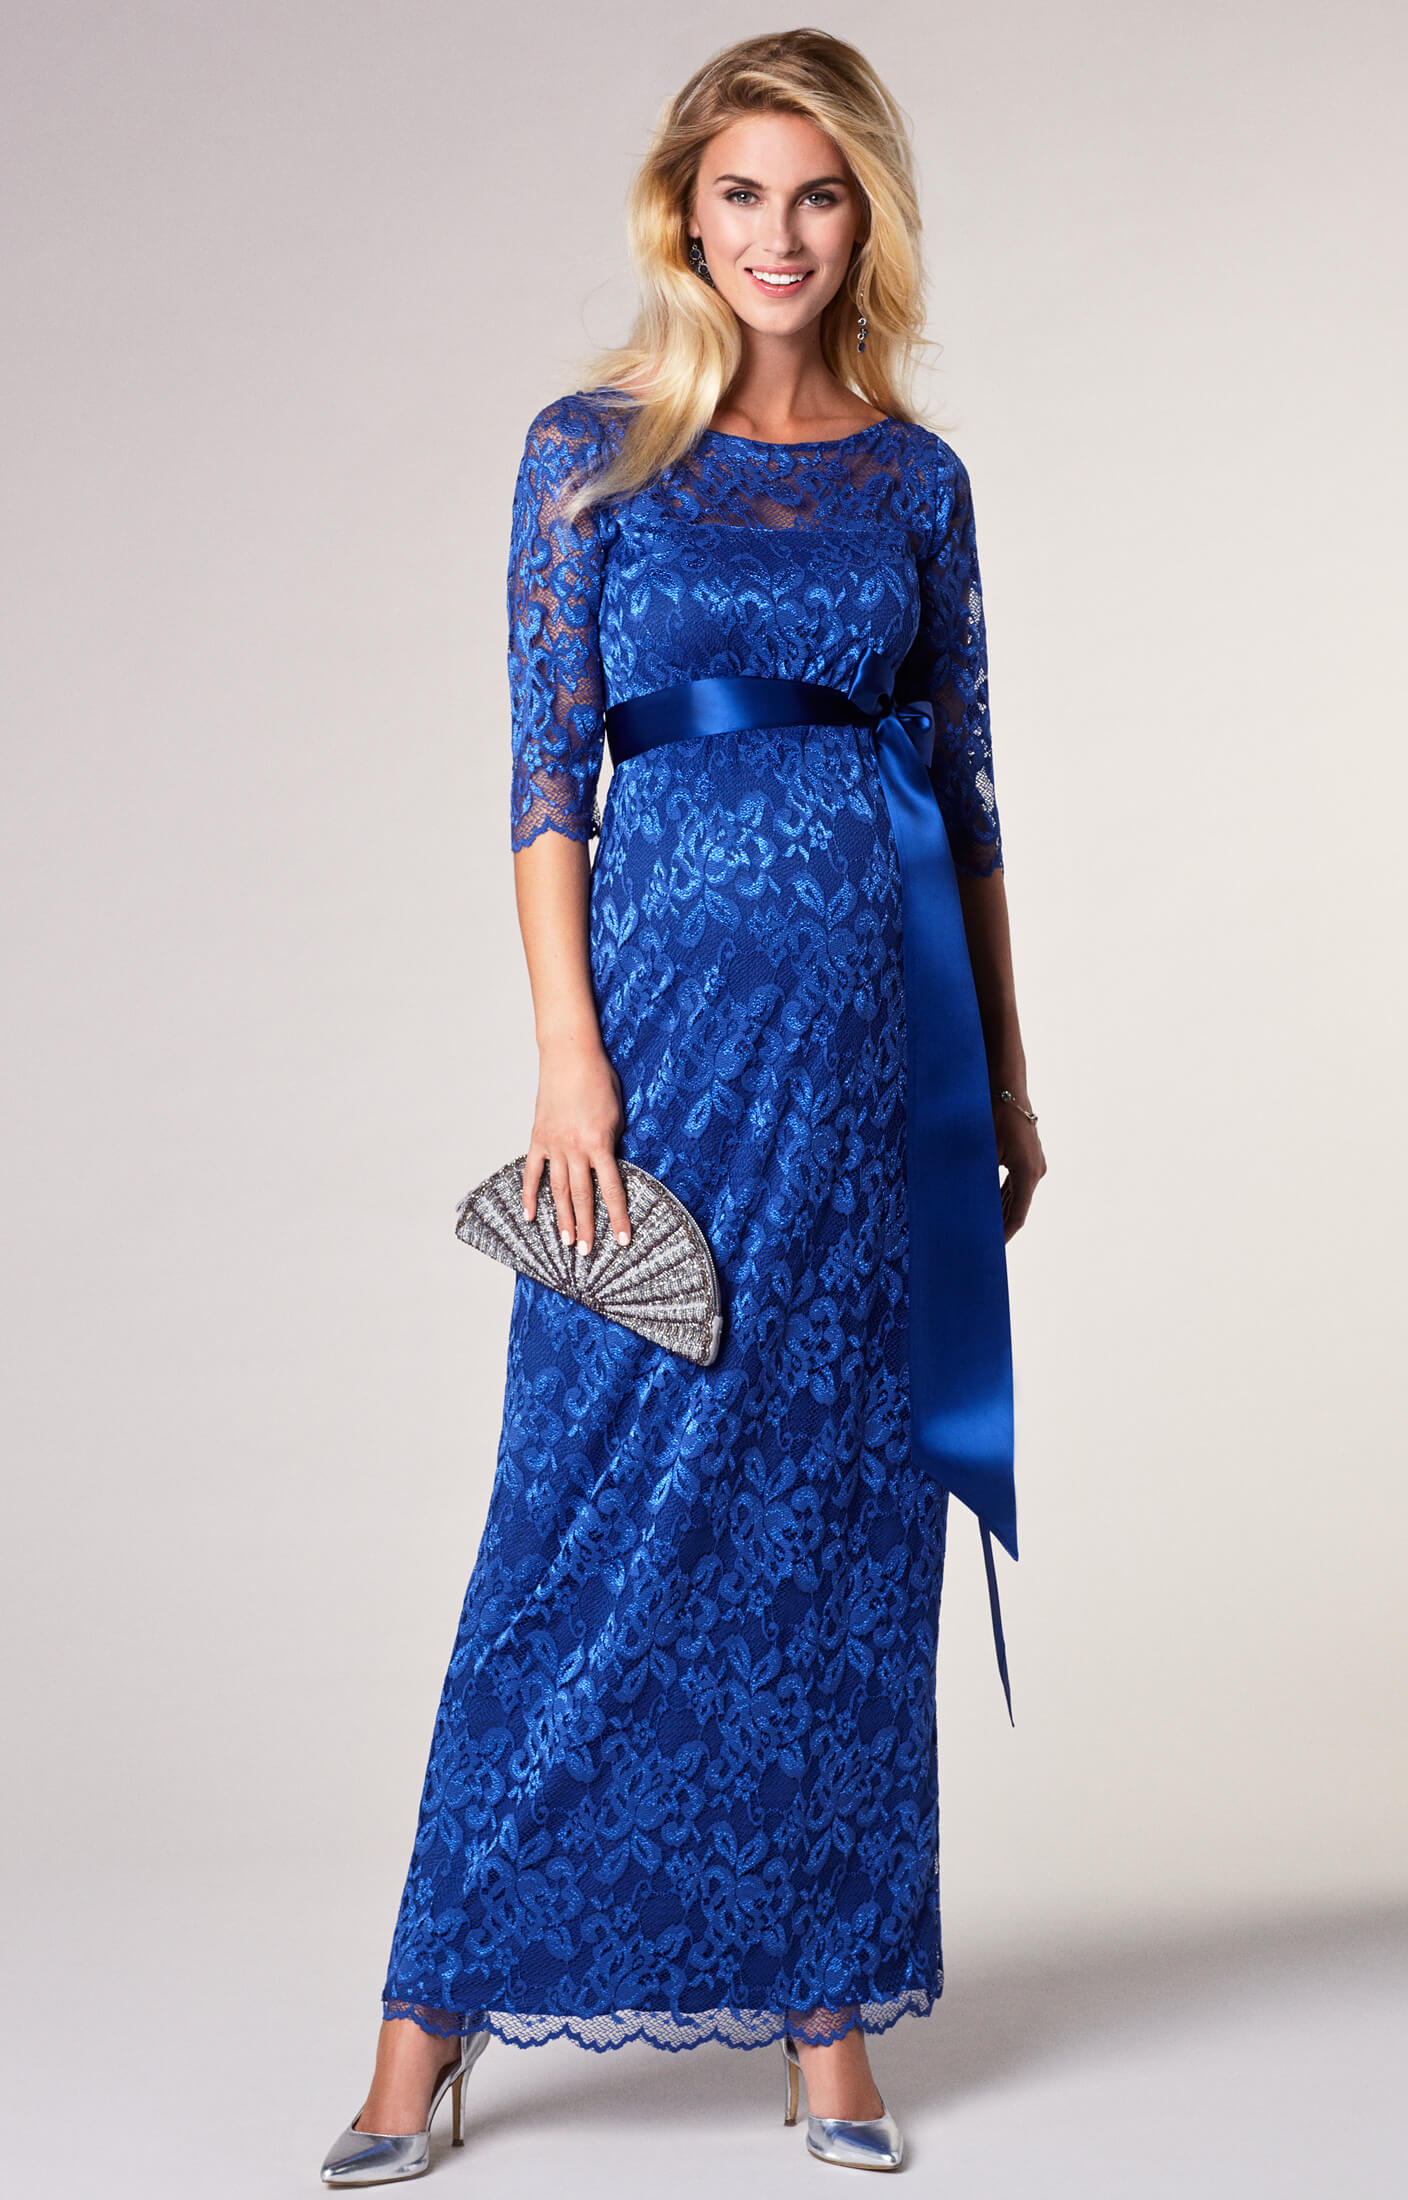 Blue Maternity Wedding Dresses